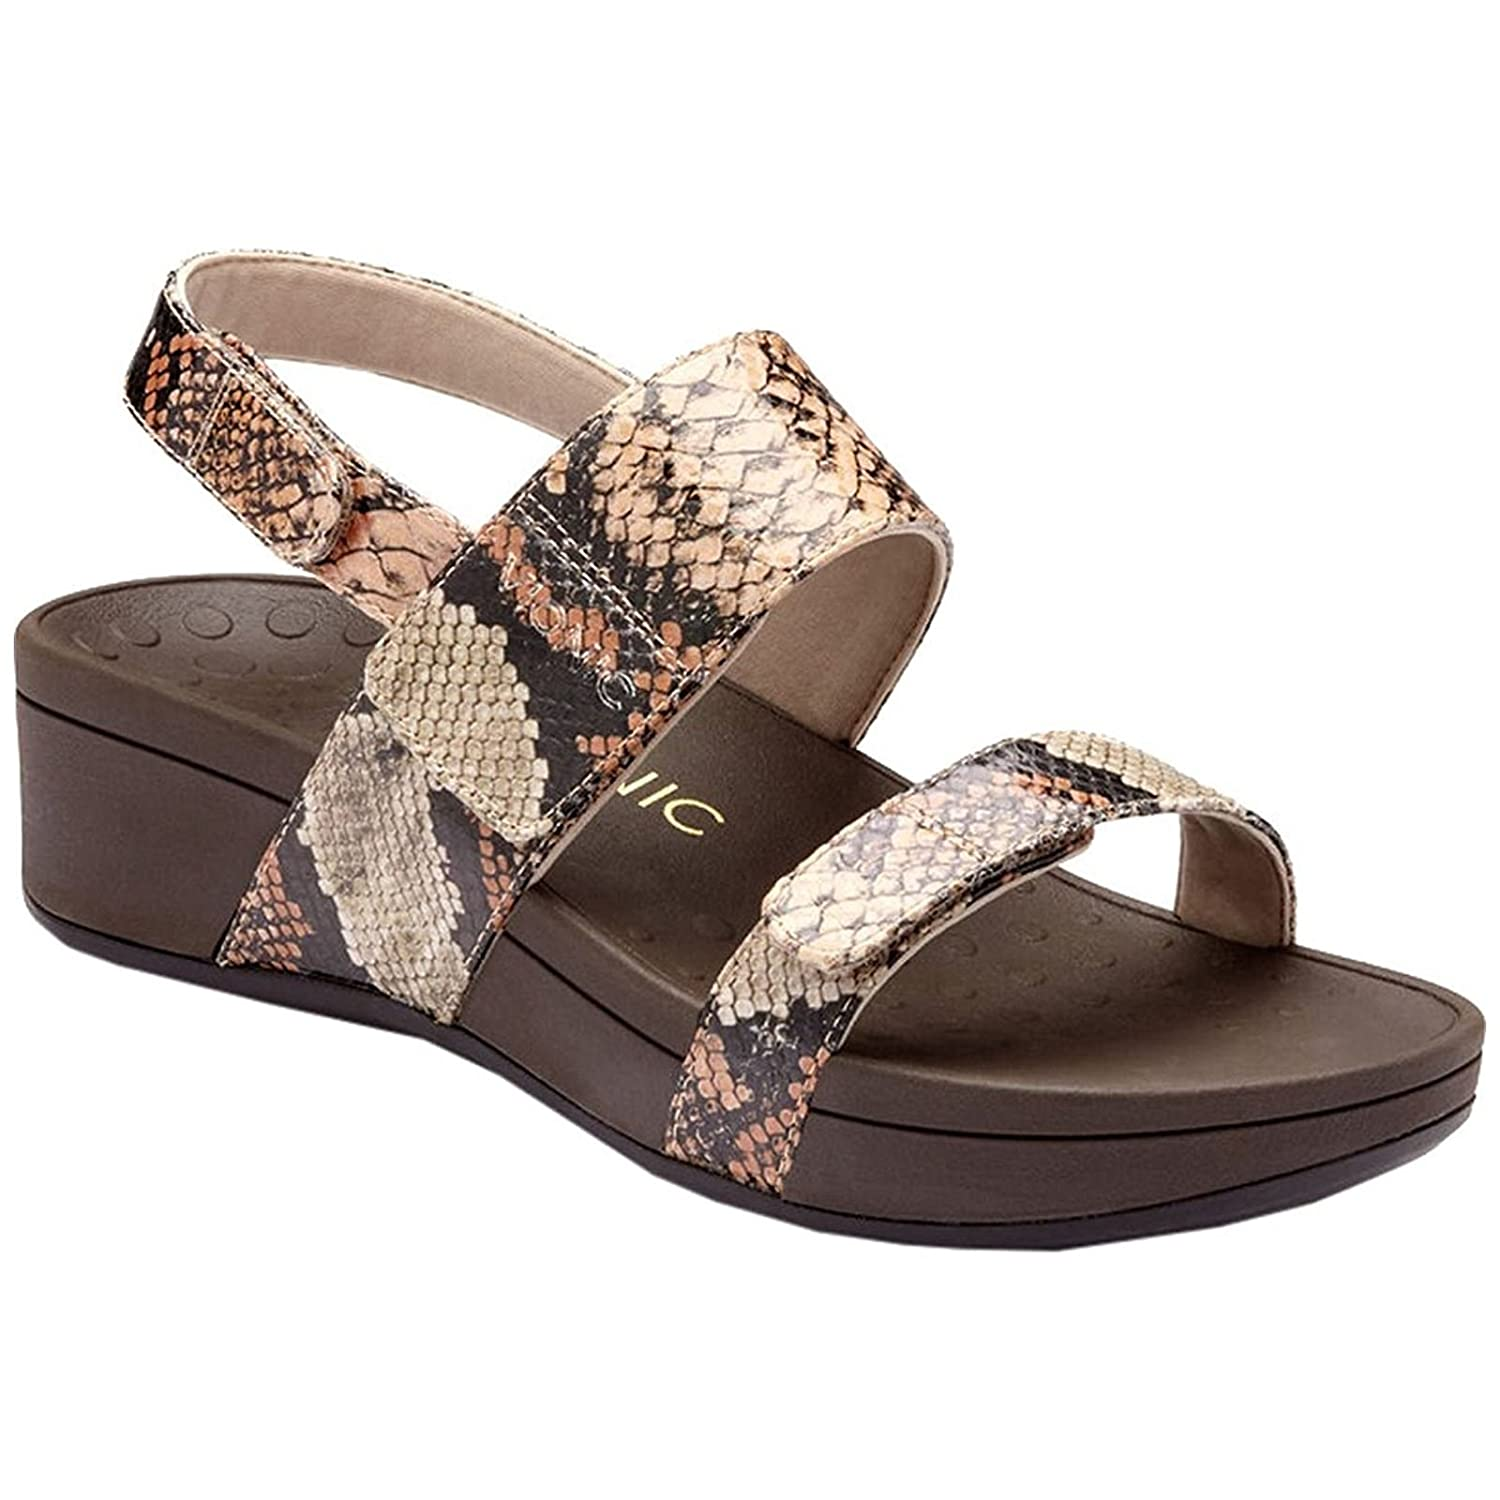 54bf97008ed Vionic Women s Pacific Bolinas Leather Ankle Strap Sandals  Amazon.co.uk   Shoes   Bags